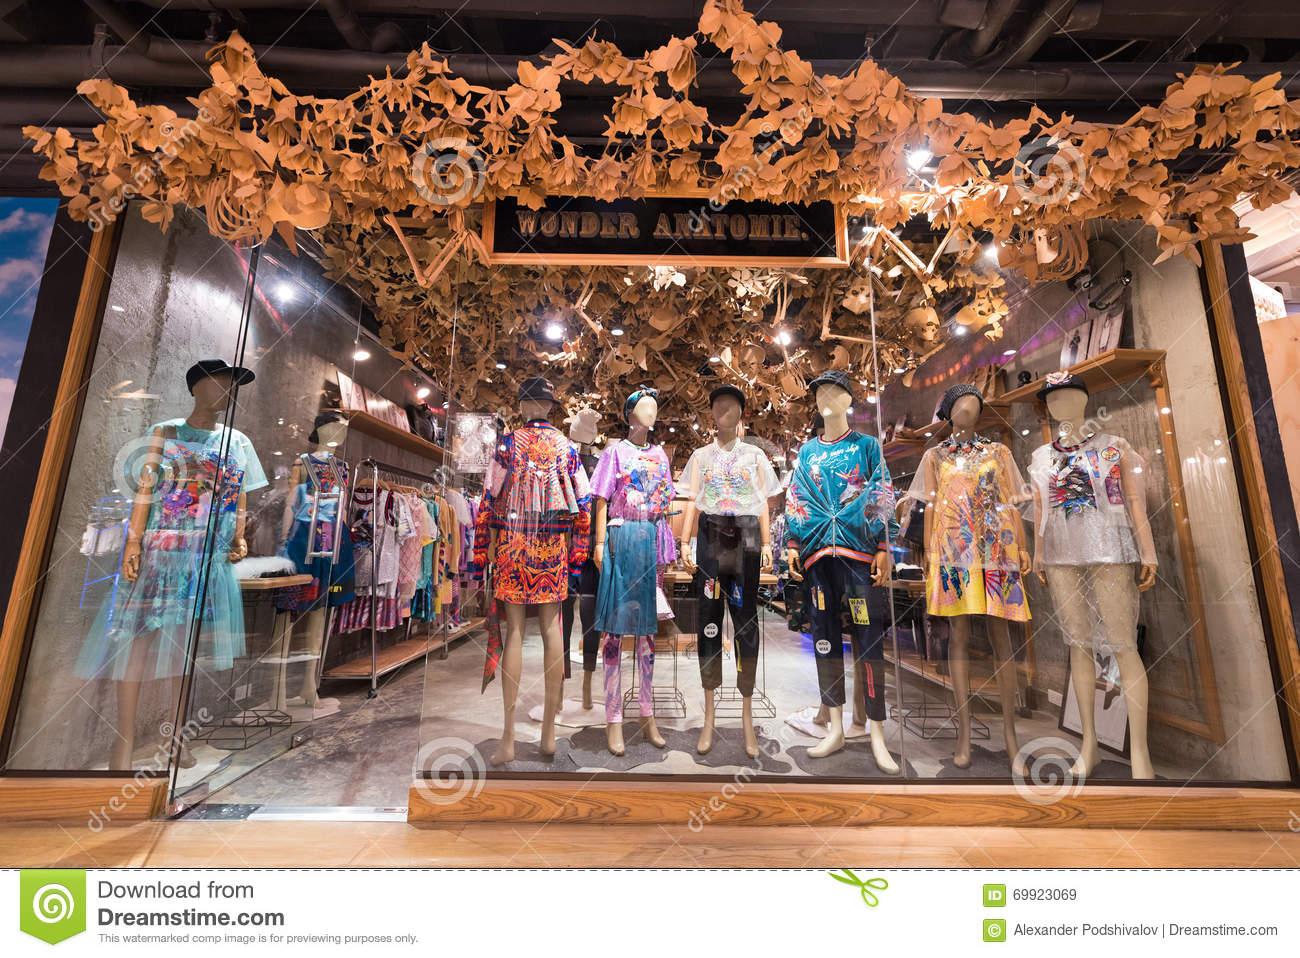 354f47da2f BANGKOK - MARCH 17, 2016 : A view at the Wonder Anatomie store in the Siam  Center. It was built in 1973 and was one of Bangkoks first shopping malls.